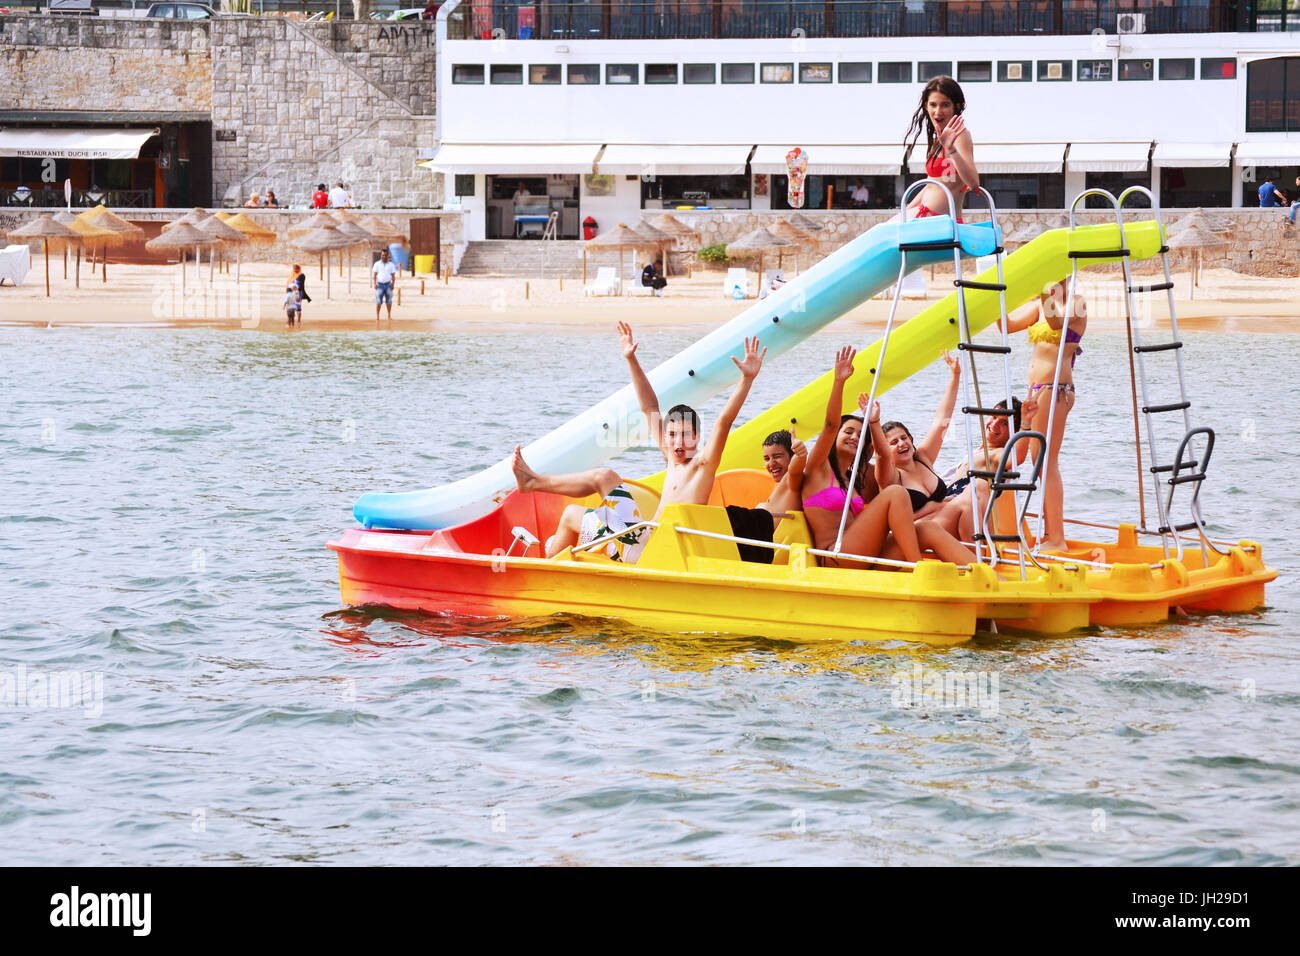 A group of teenagers having fun on a floating water slide near the beach during Summer in Cascais, Portugal. - Stock Image